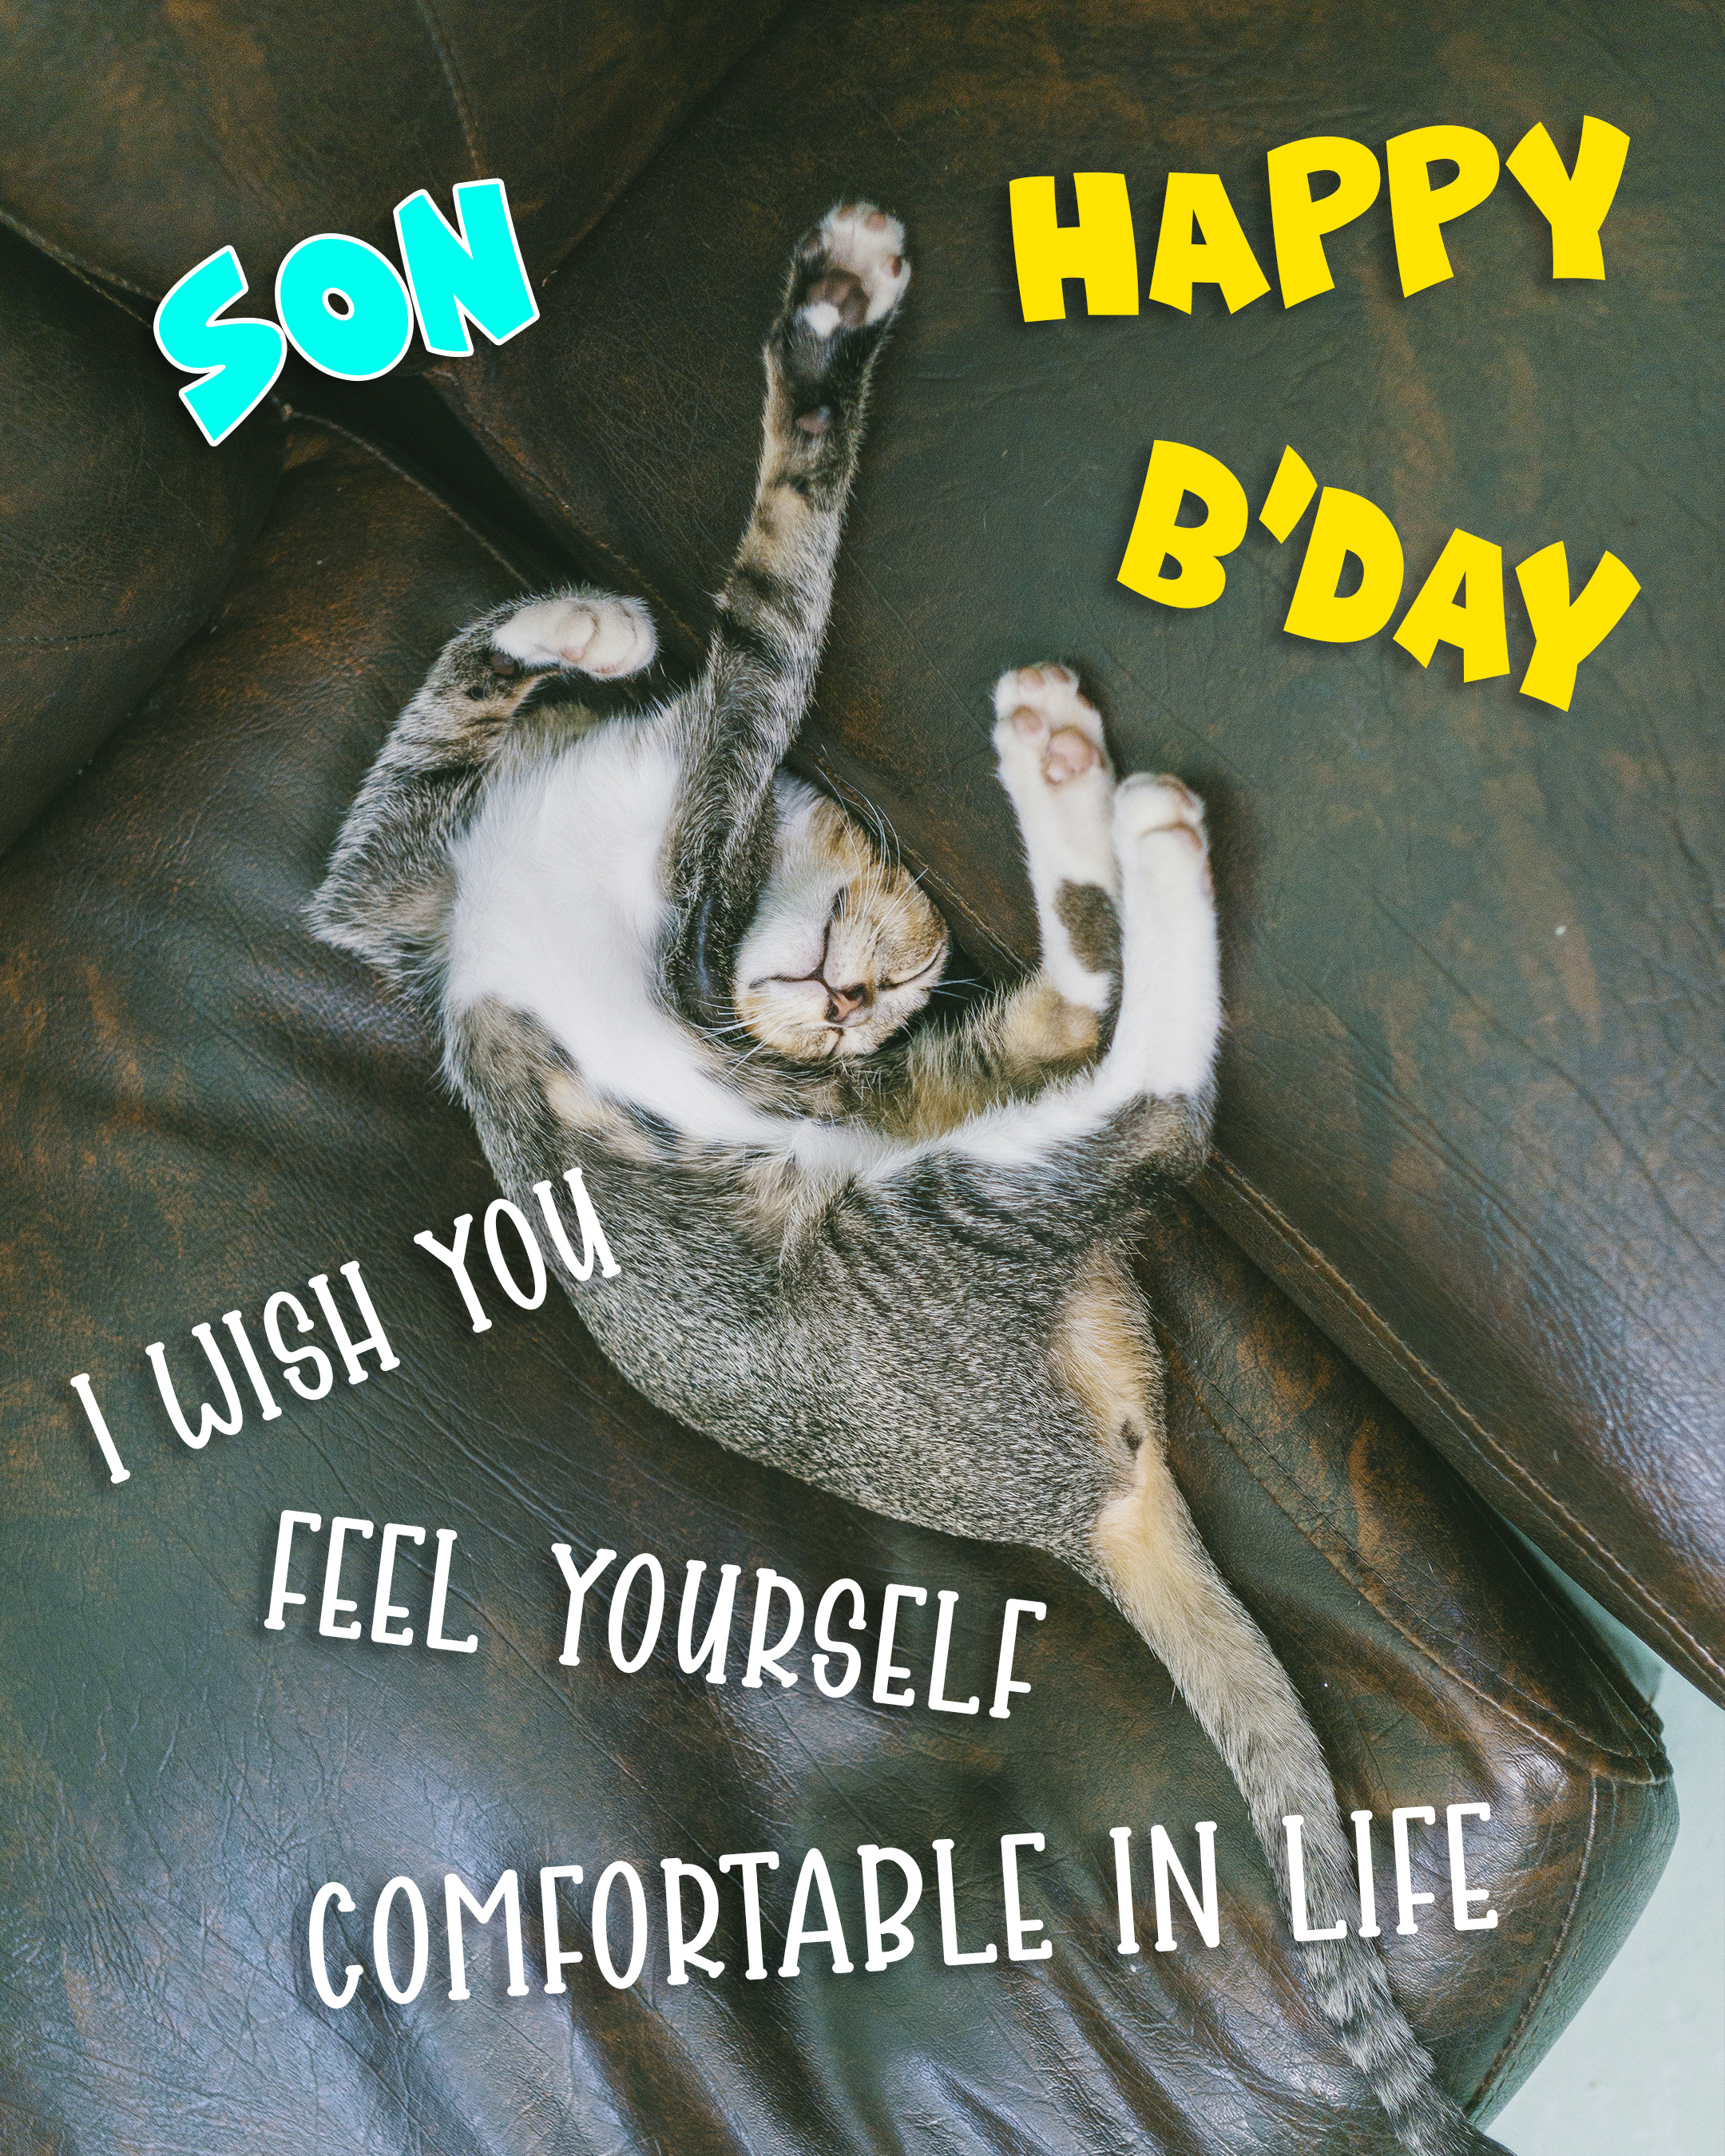 Free Funny Happy Birthday Image For Son With Cat - birthdayimg.com